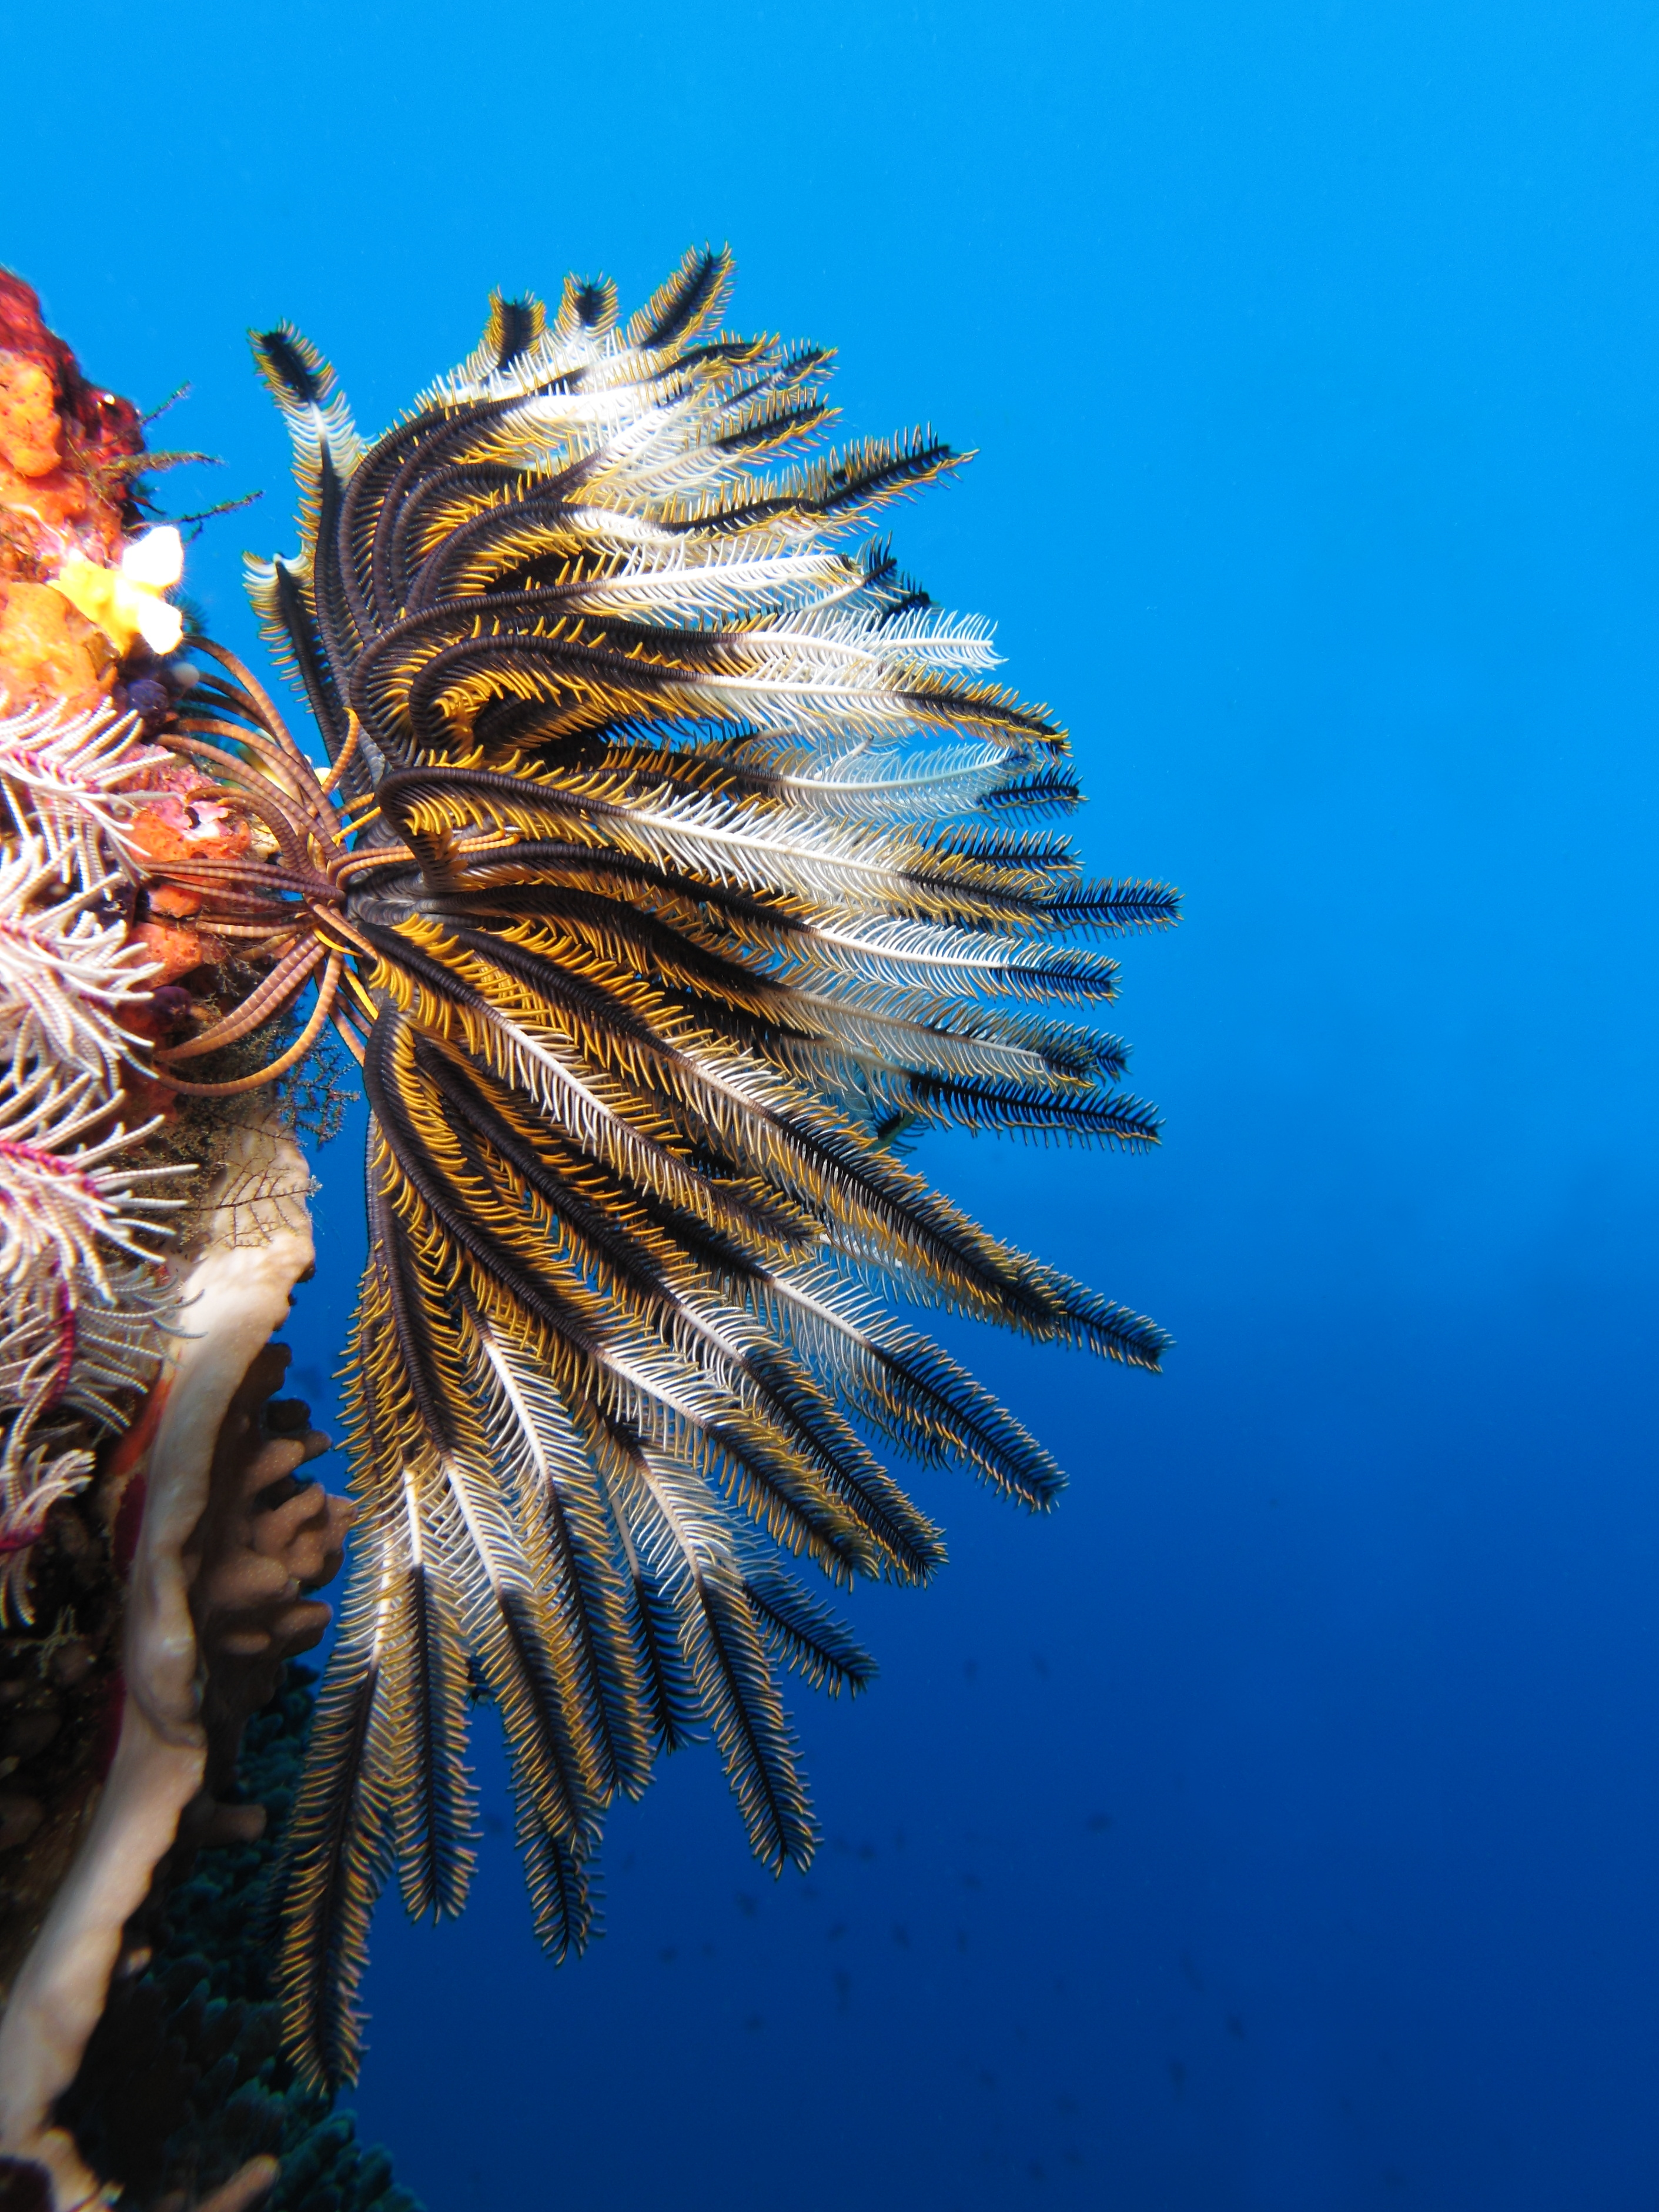 Crinoid on the reef of Batu Moncho Island